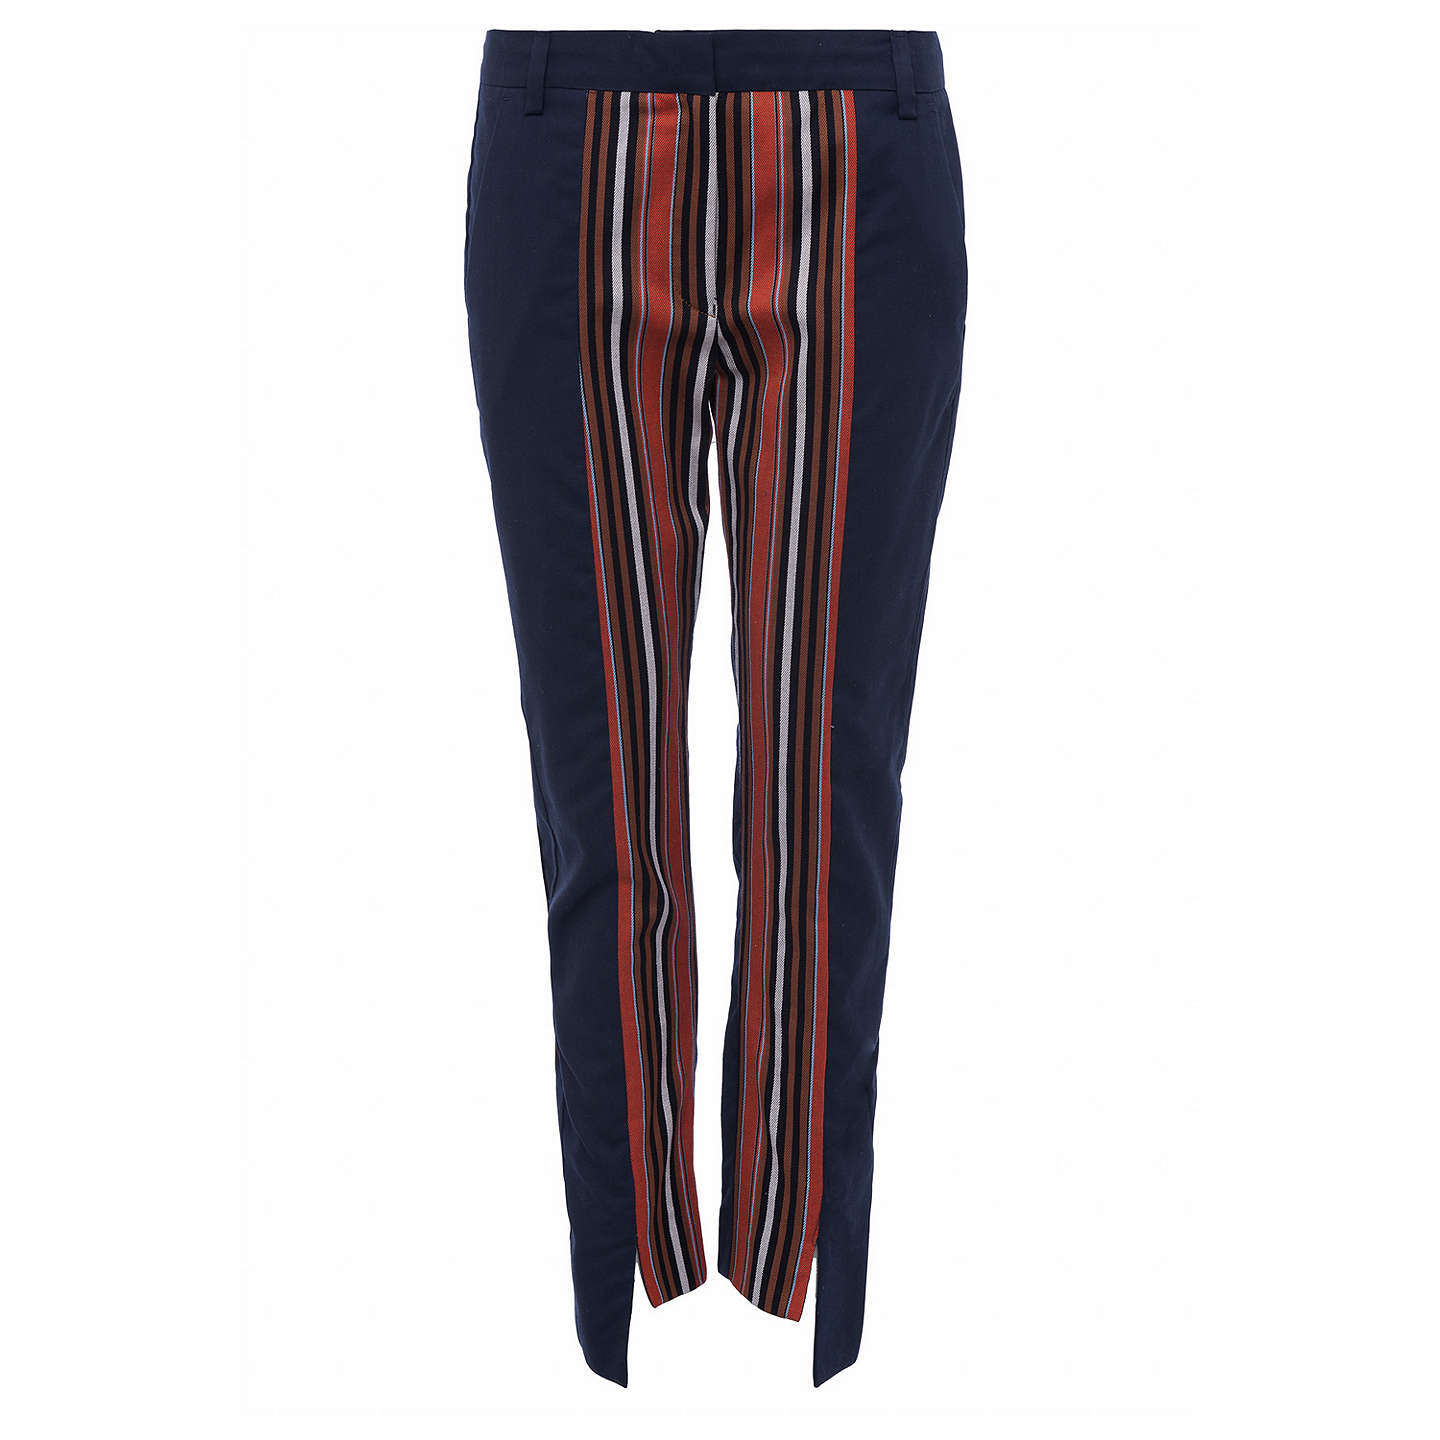 BuyFrench Connection Dovie Stripe Suiting Mix Slim Trousers, Copper Coin/Utility Blue, 6 Online at johnlewis.com